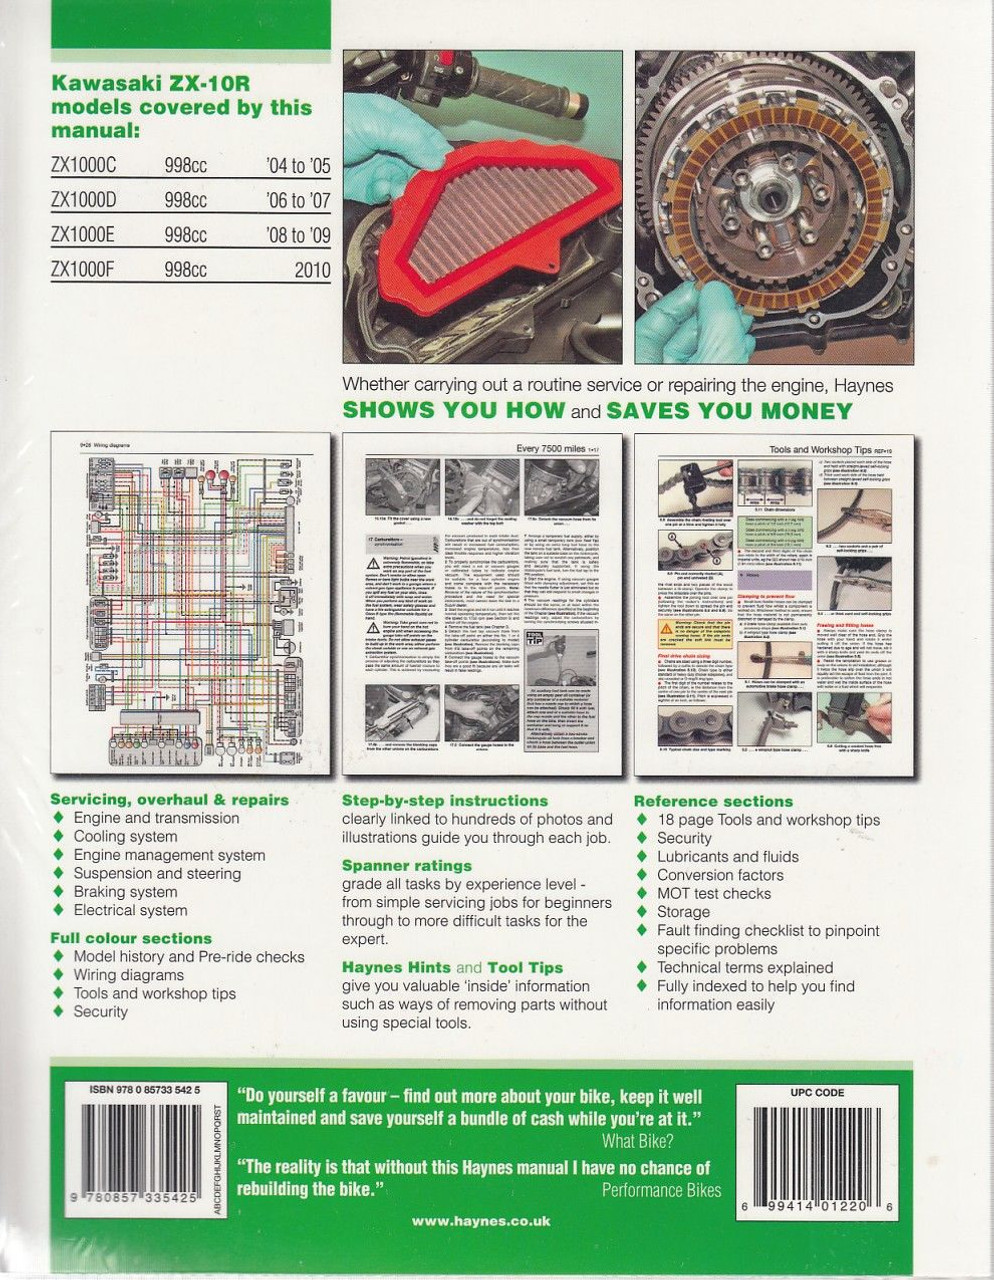 Kawasaki Ninja Zx 10r 2004 2010 Workshop Manual Klr650 A9 1995 Motorcycle Electrical Wiring Diagram All Back Cover